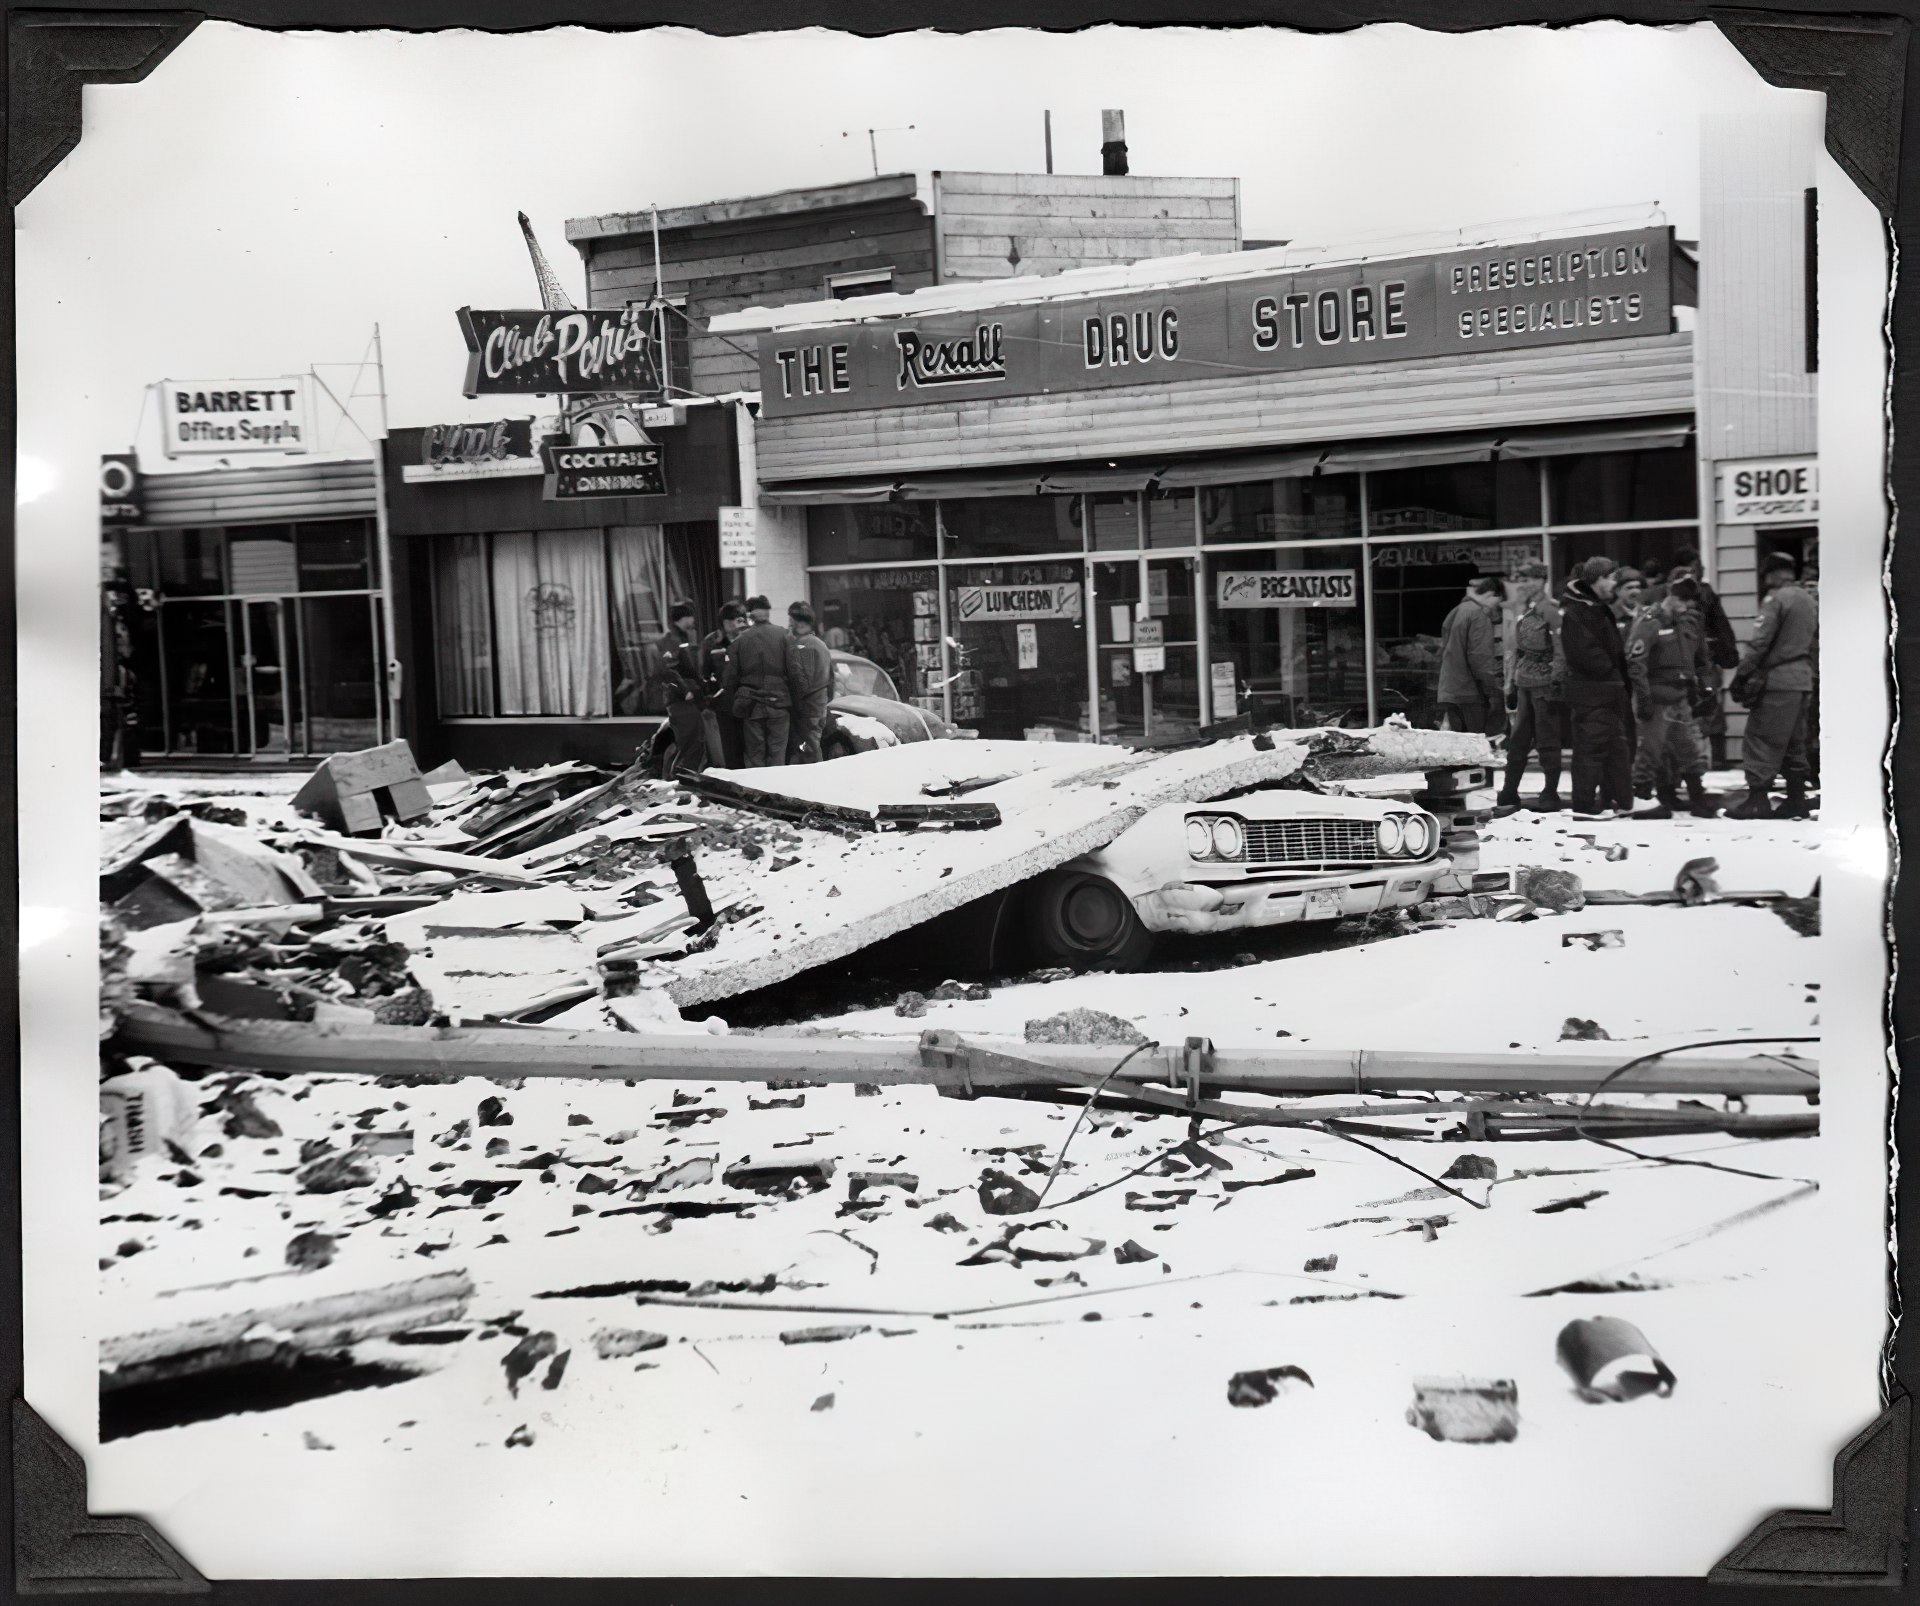 Quake damage in front of the Club Paris bar and Rexall Drug Store in 1964